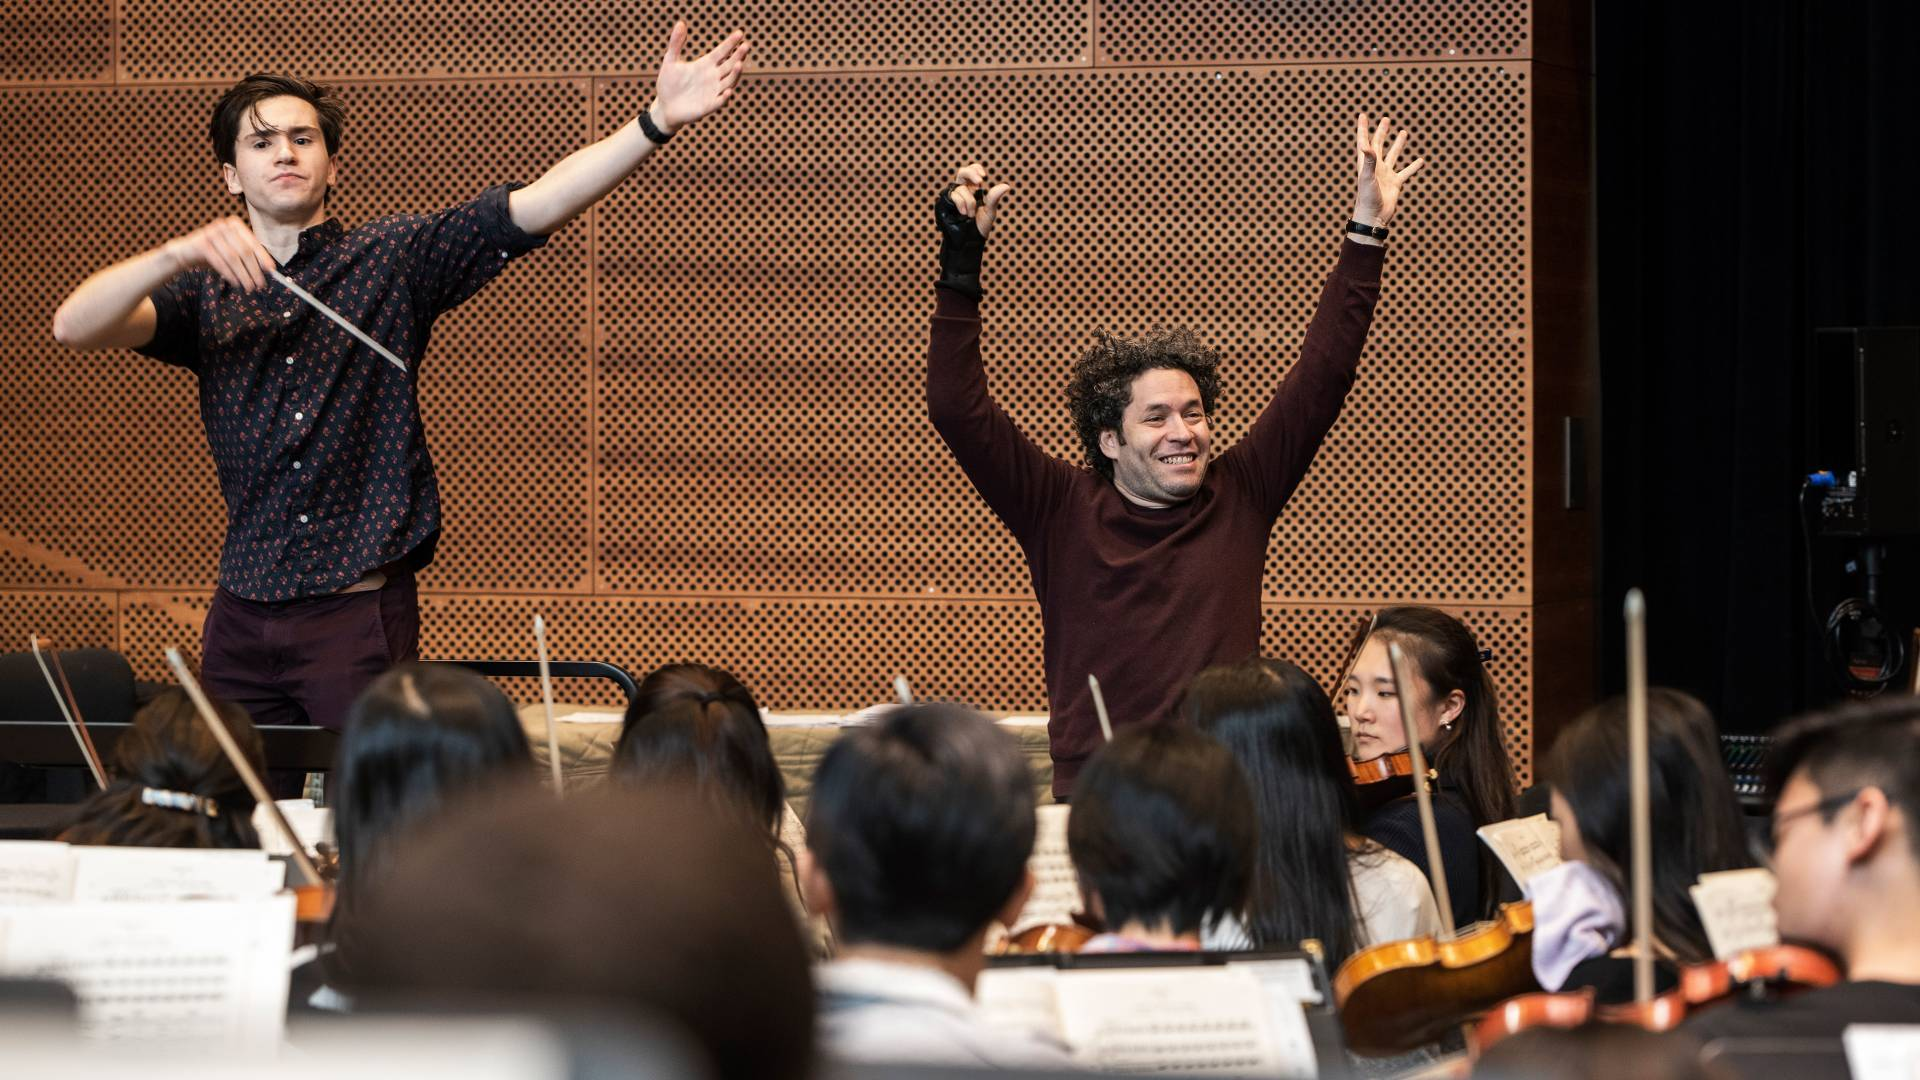 Reilly Bova and Gustavo Dudamel conducting orchestra